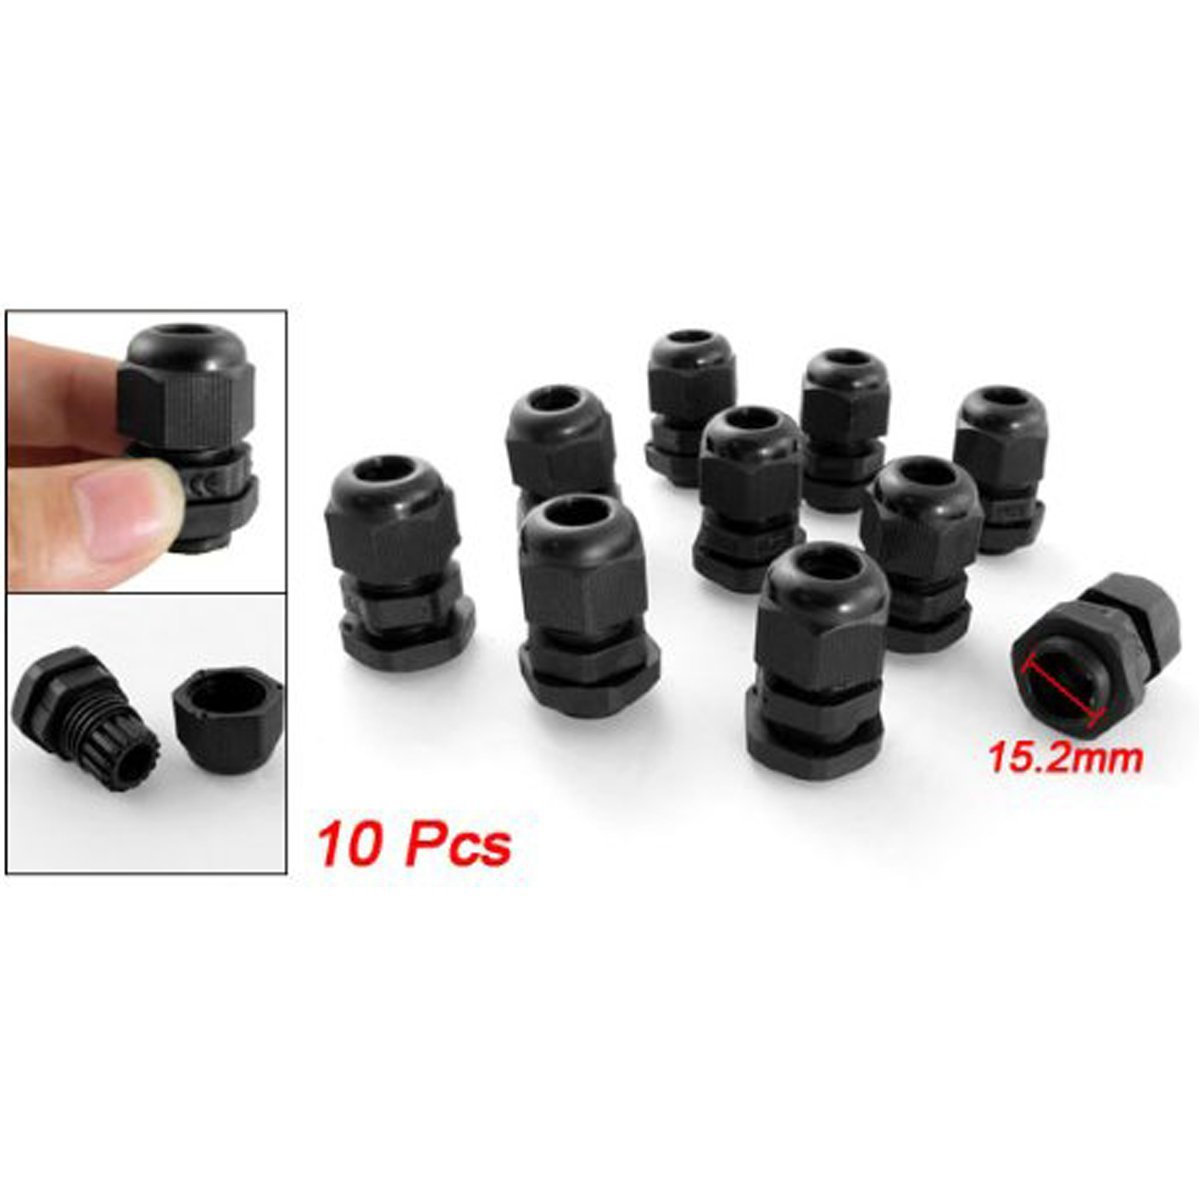 YXQ Stainless Steel PG7 3.0-6.5mm Waterproof Connector Cable Gland 3 Pcs